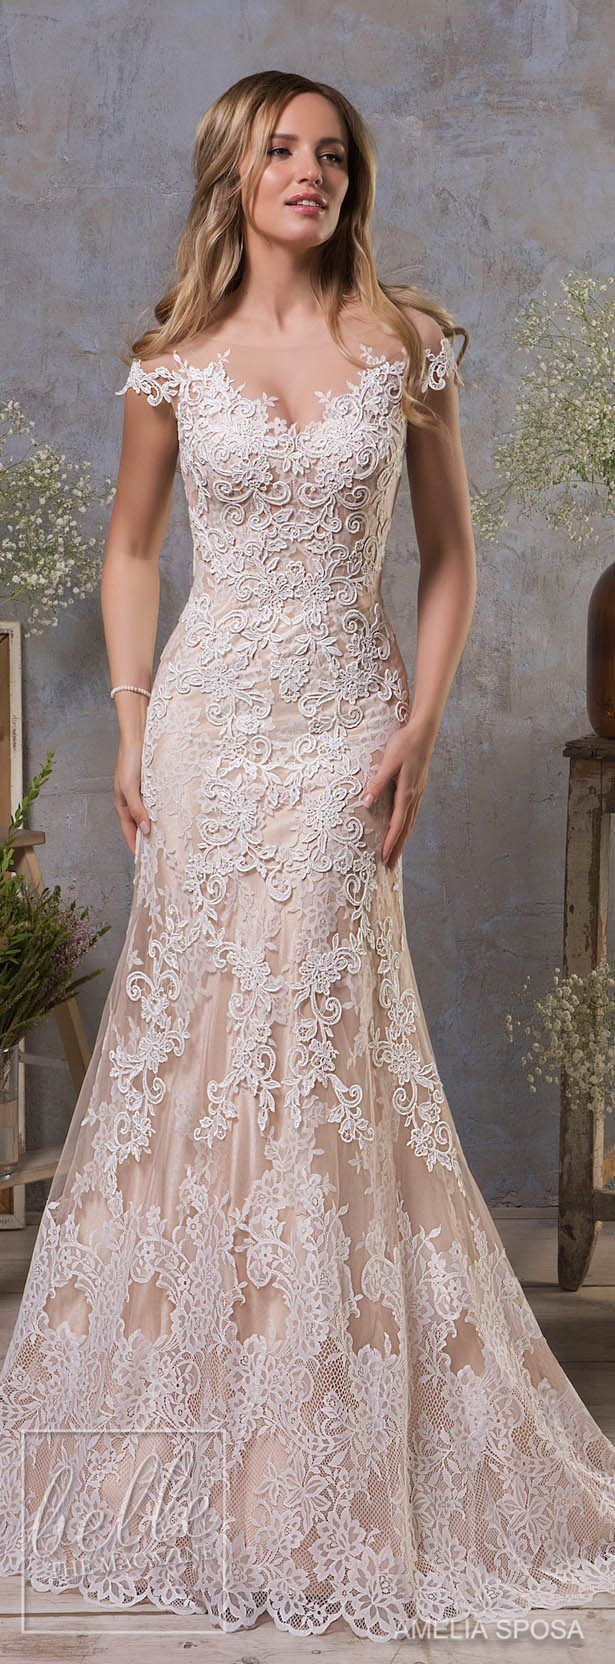 7579 best my favorite wedding gowns images on pinterest bridal amelia sposa fall 2018 wedding dresses ombrellifo Image collections